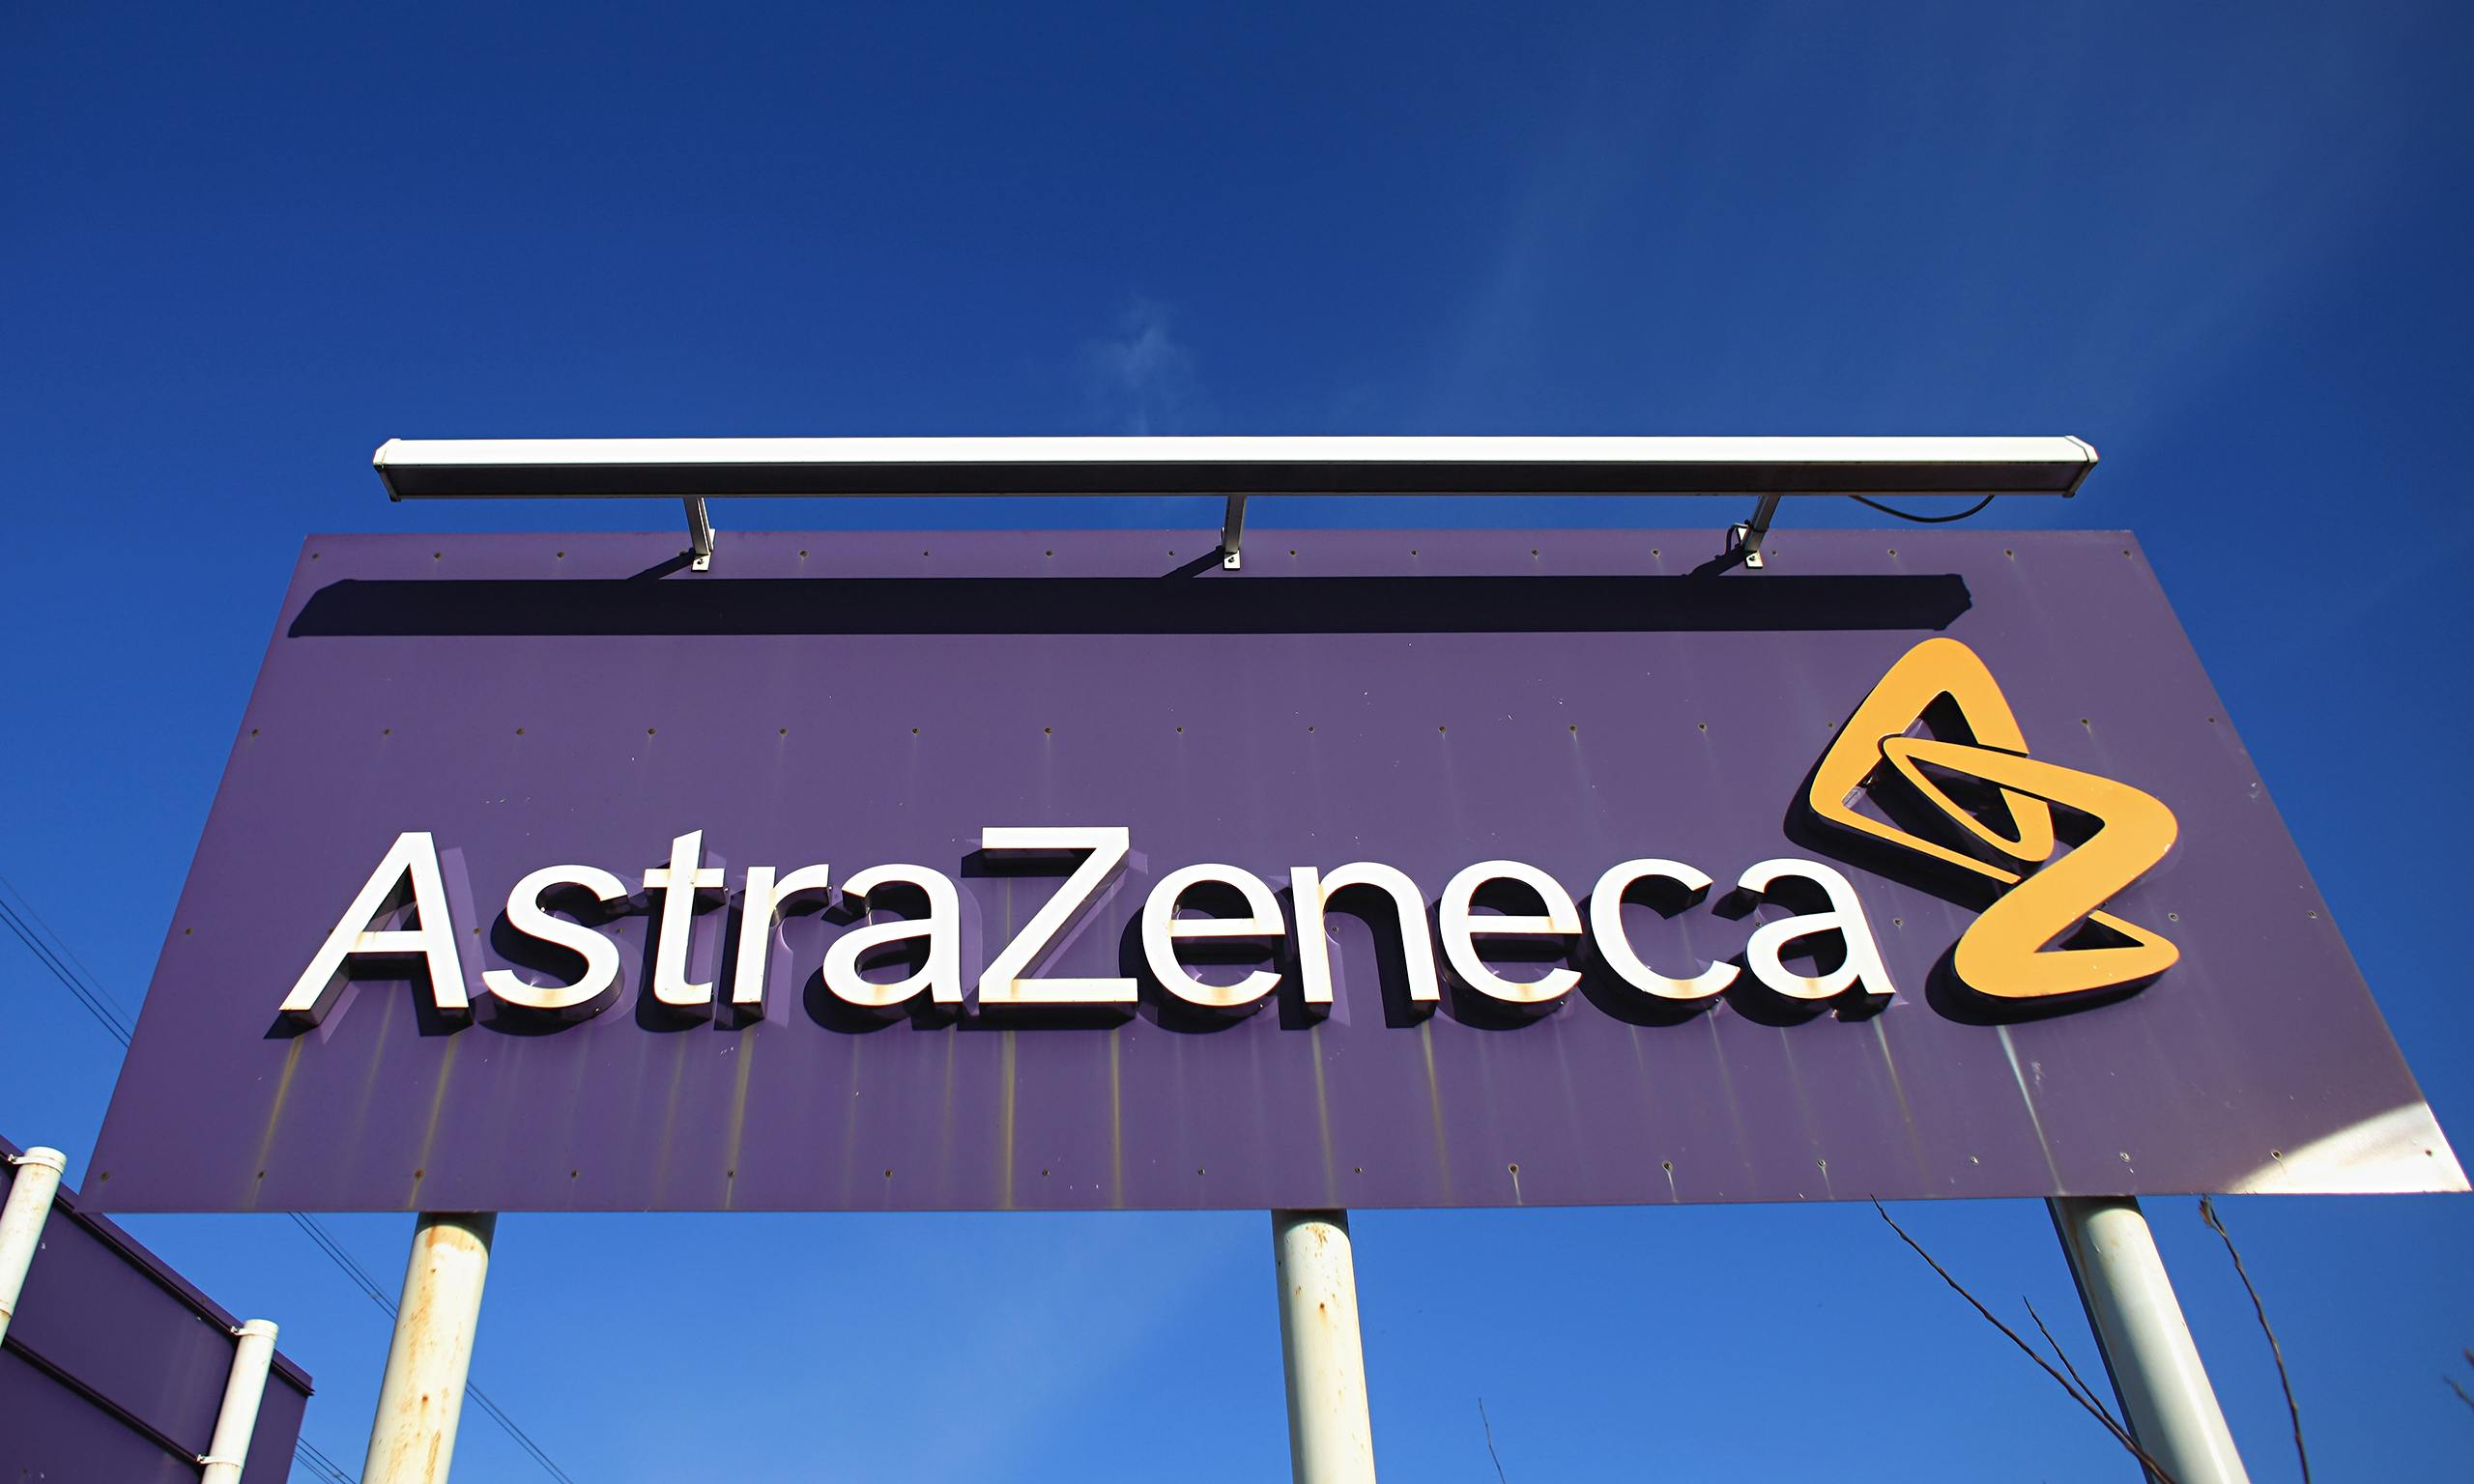 astrazeneca - photo #18